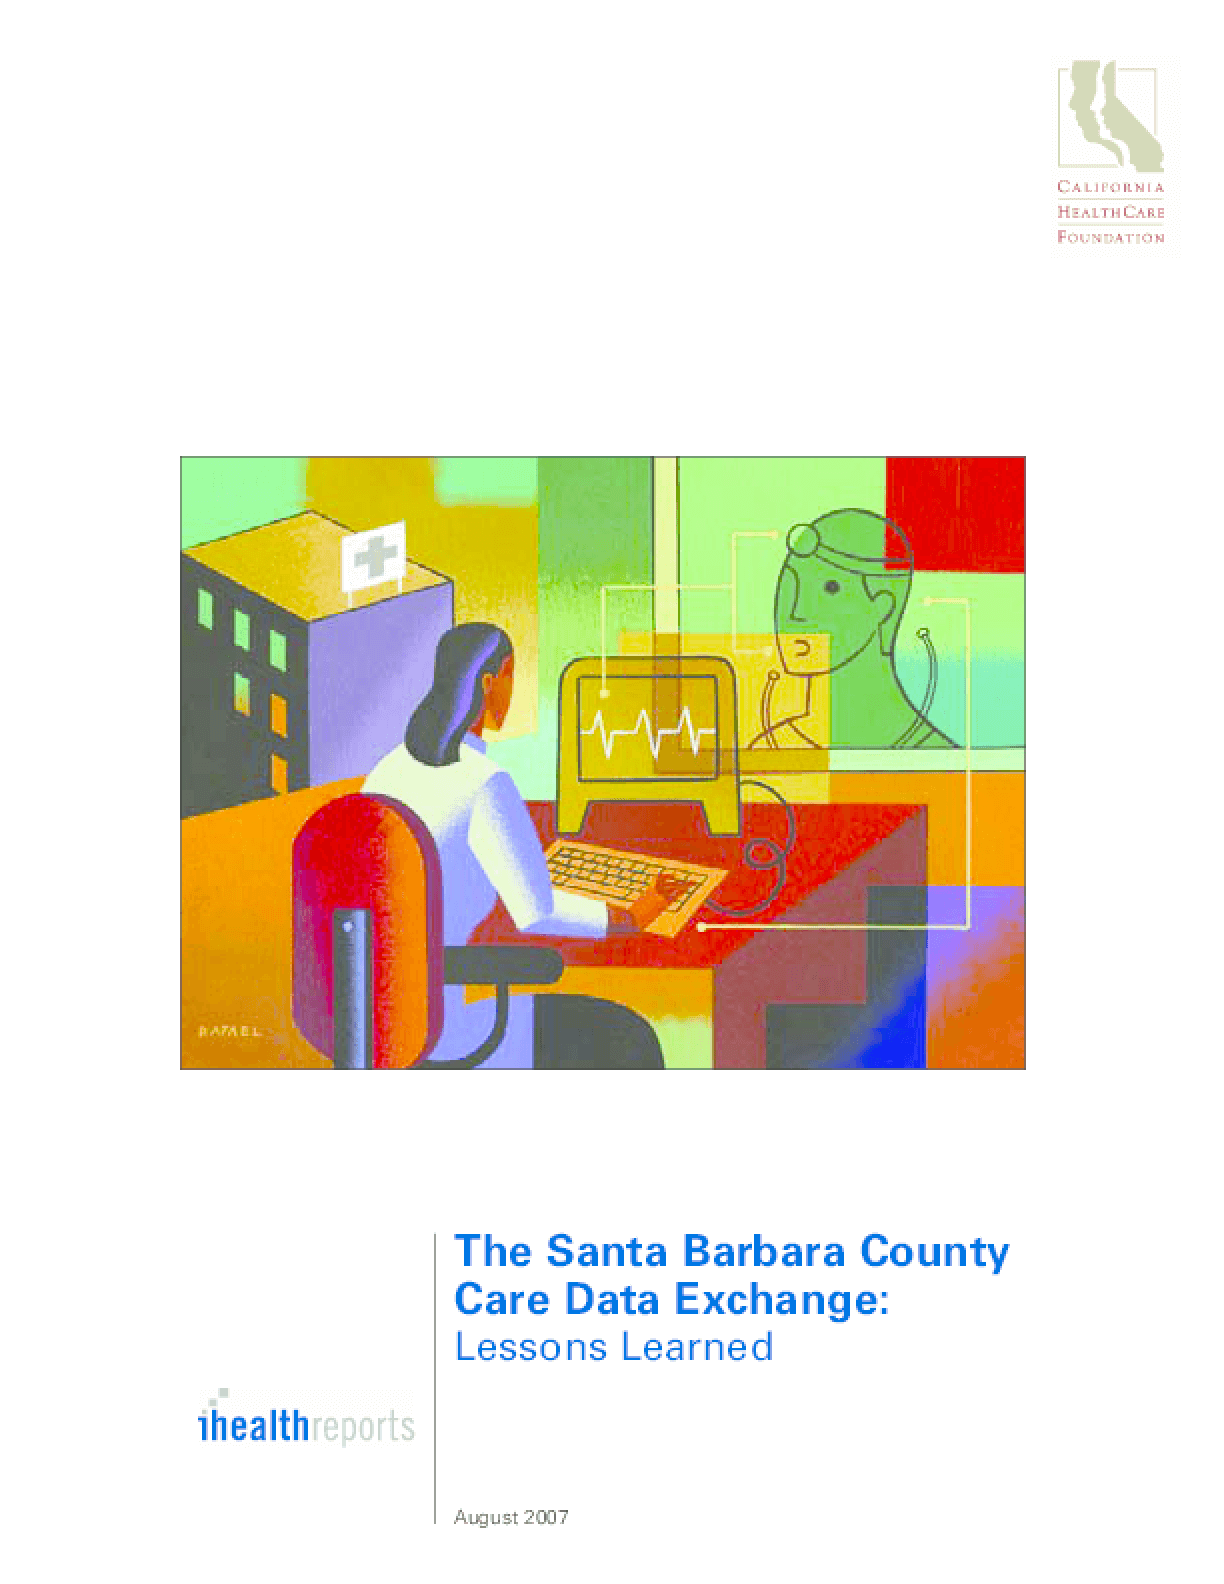 The Santa Barbara County Care Data Exchange: Lessons Learned